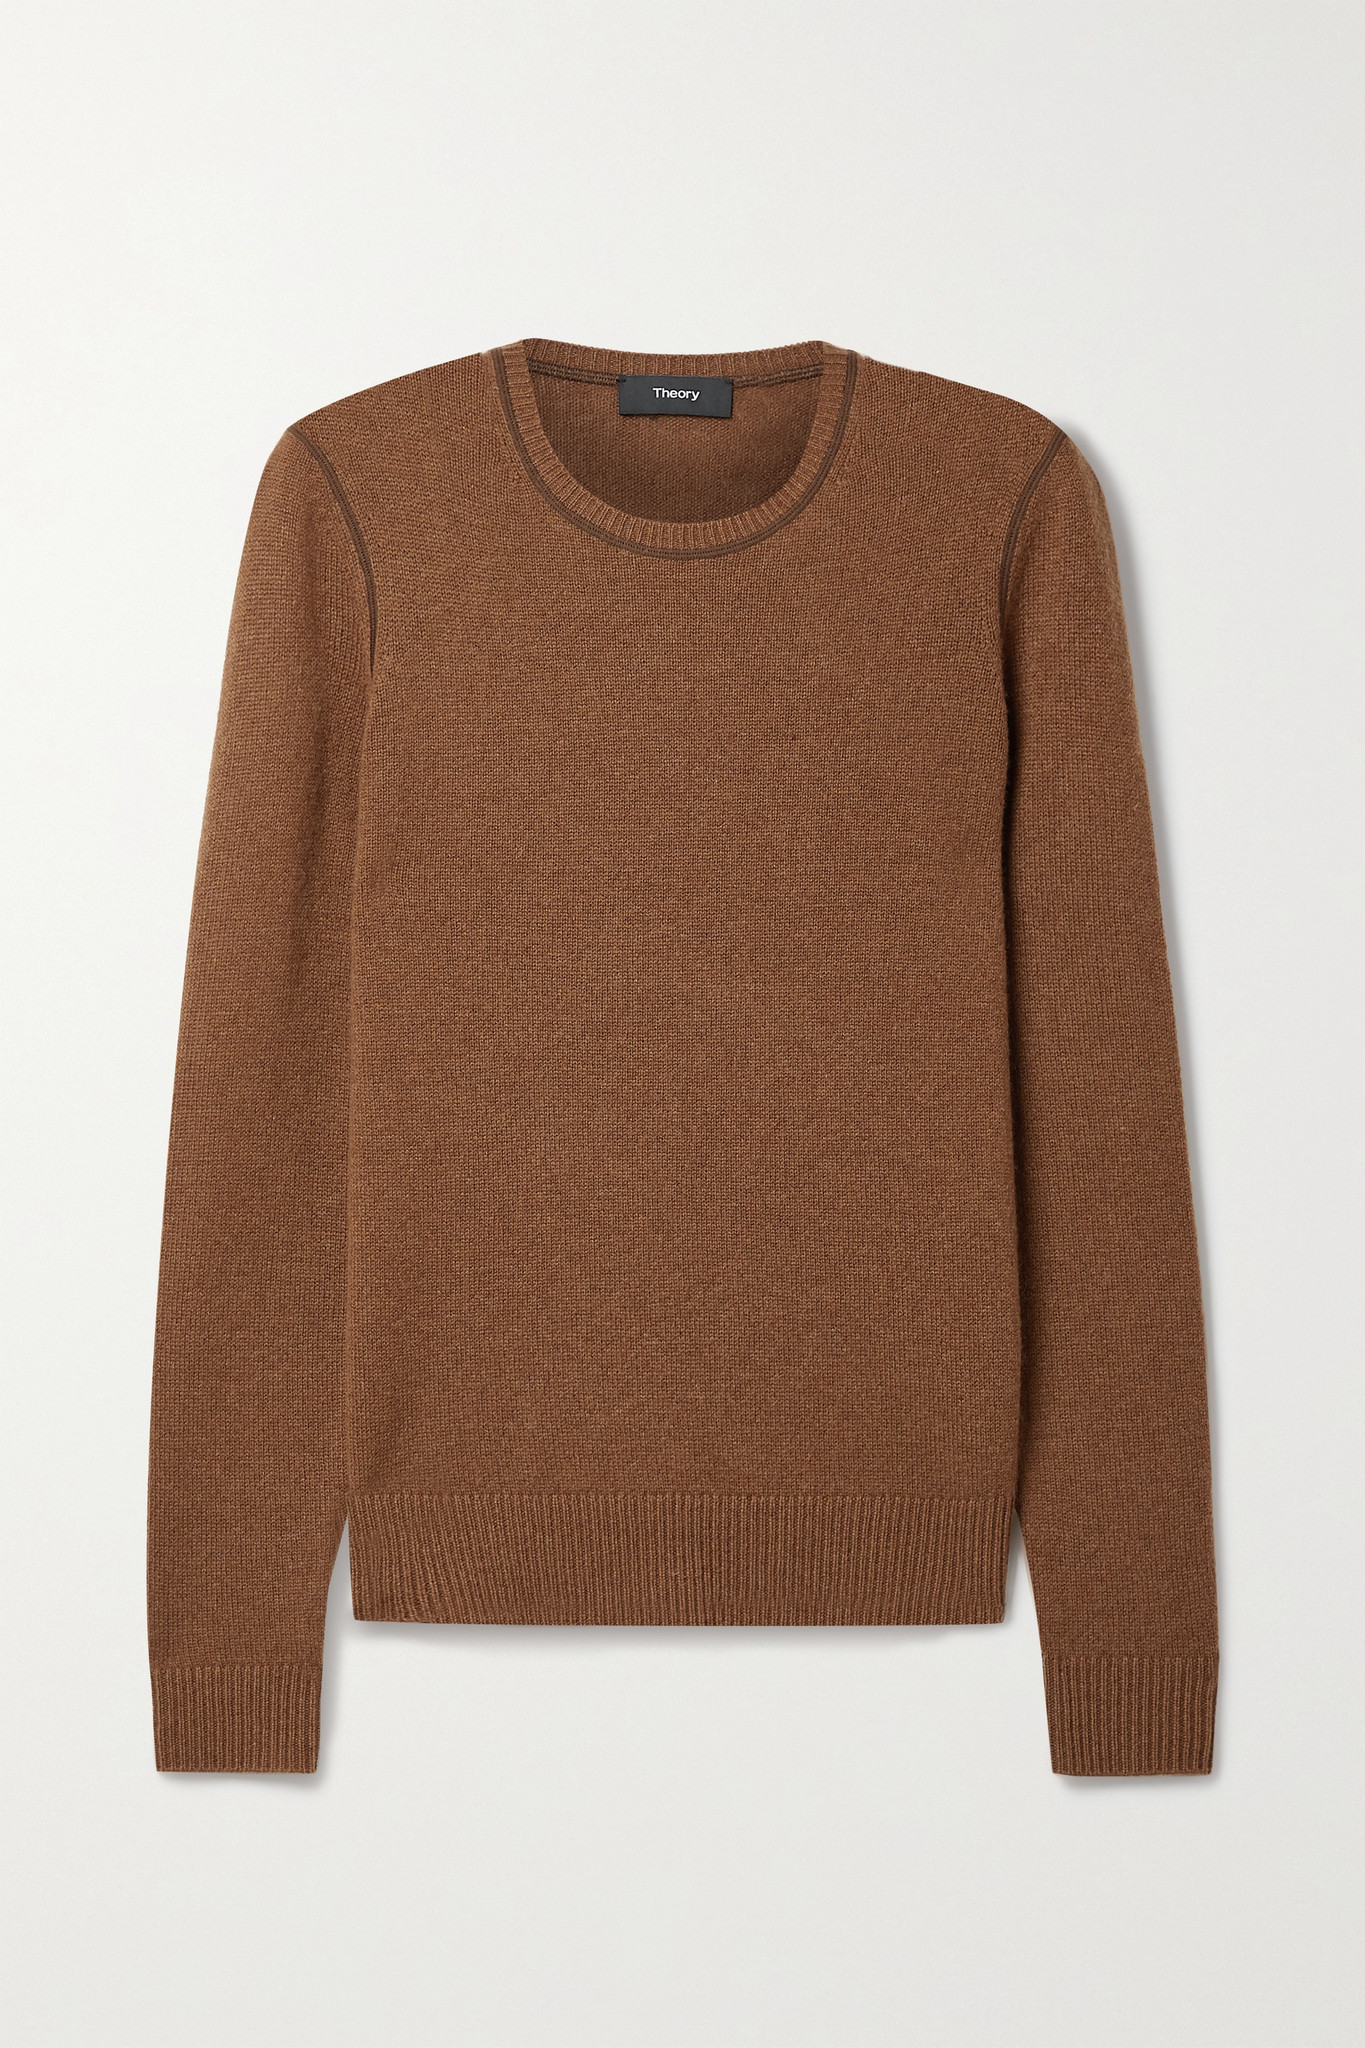 THEORY - Cashmere Sweater - Brown - x small